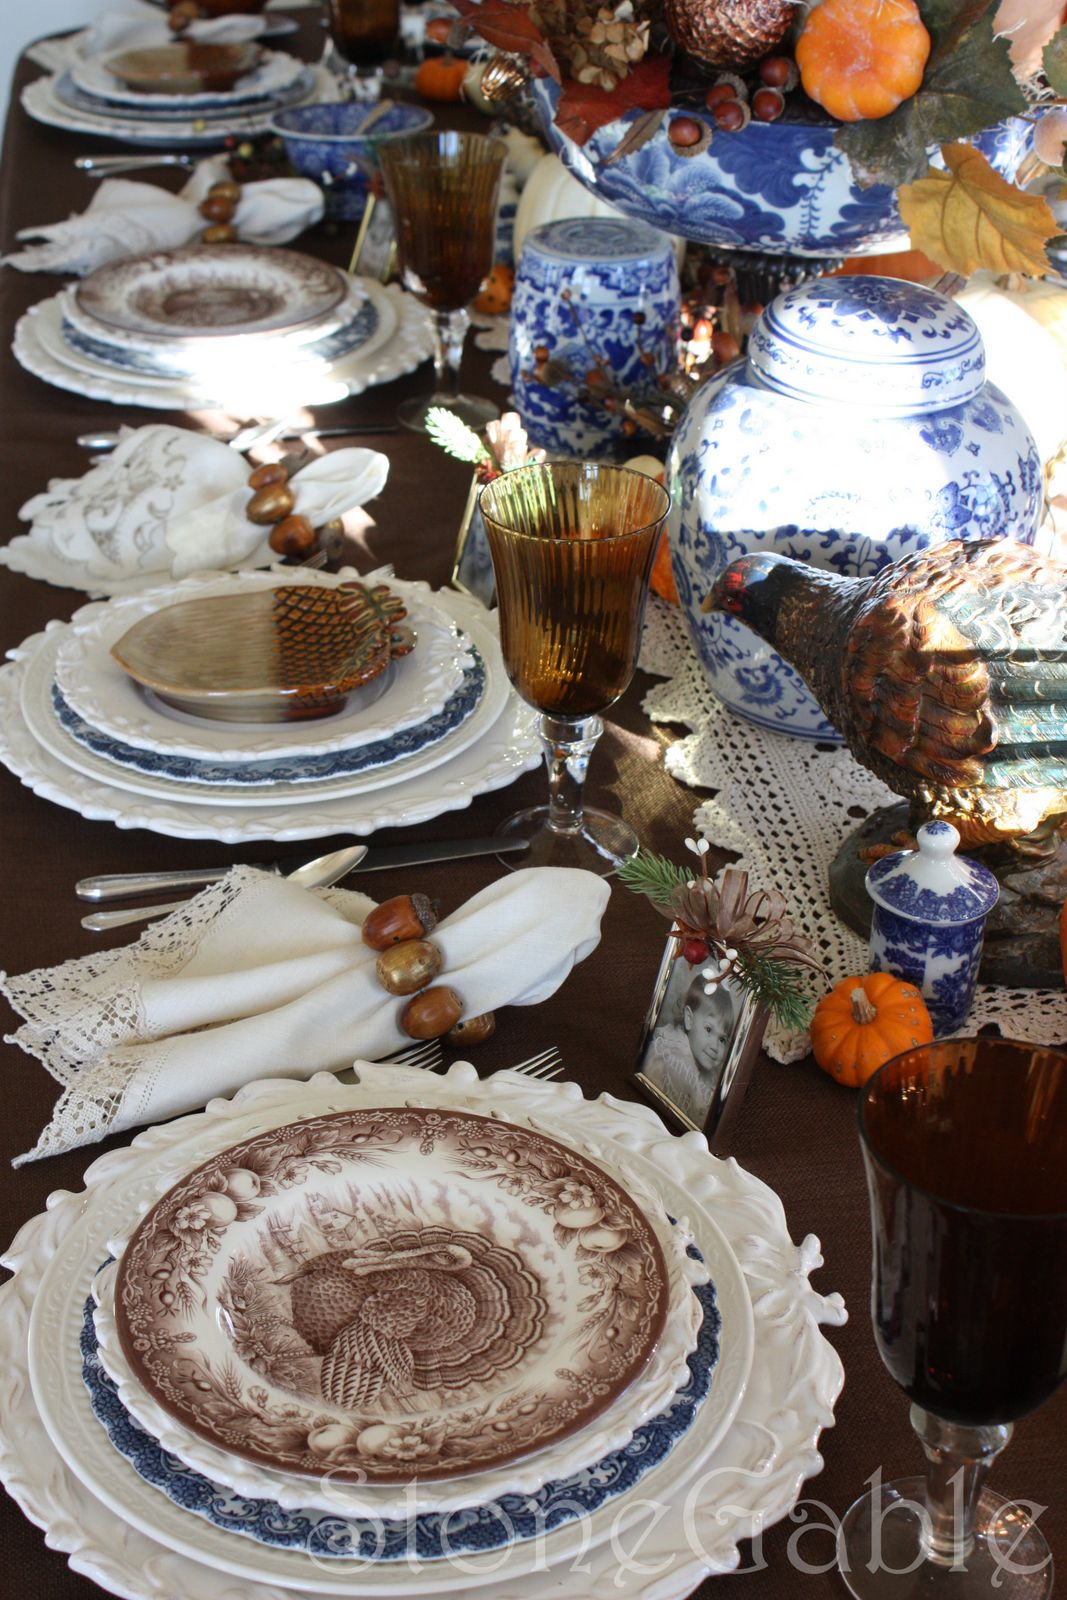 Both variations are anchored with a creamy white charger and an Italian Countryside dinner plate. These plates bring uniformity to the table settings. & Thanksgiving Table and Giveaway Winner - StoneGable